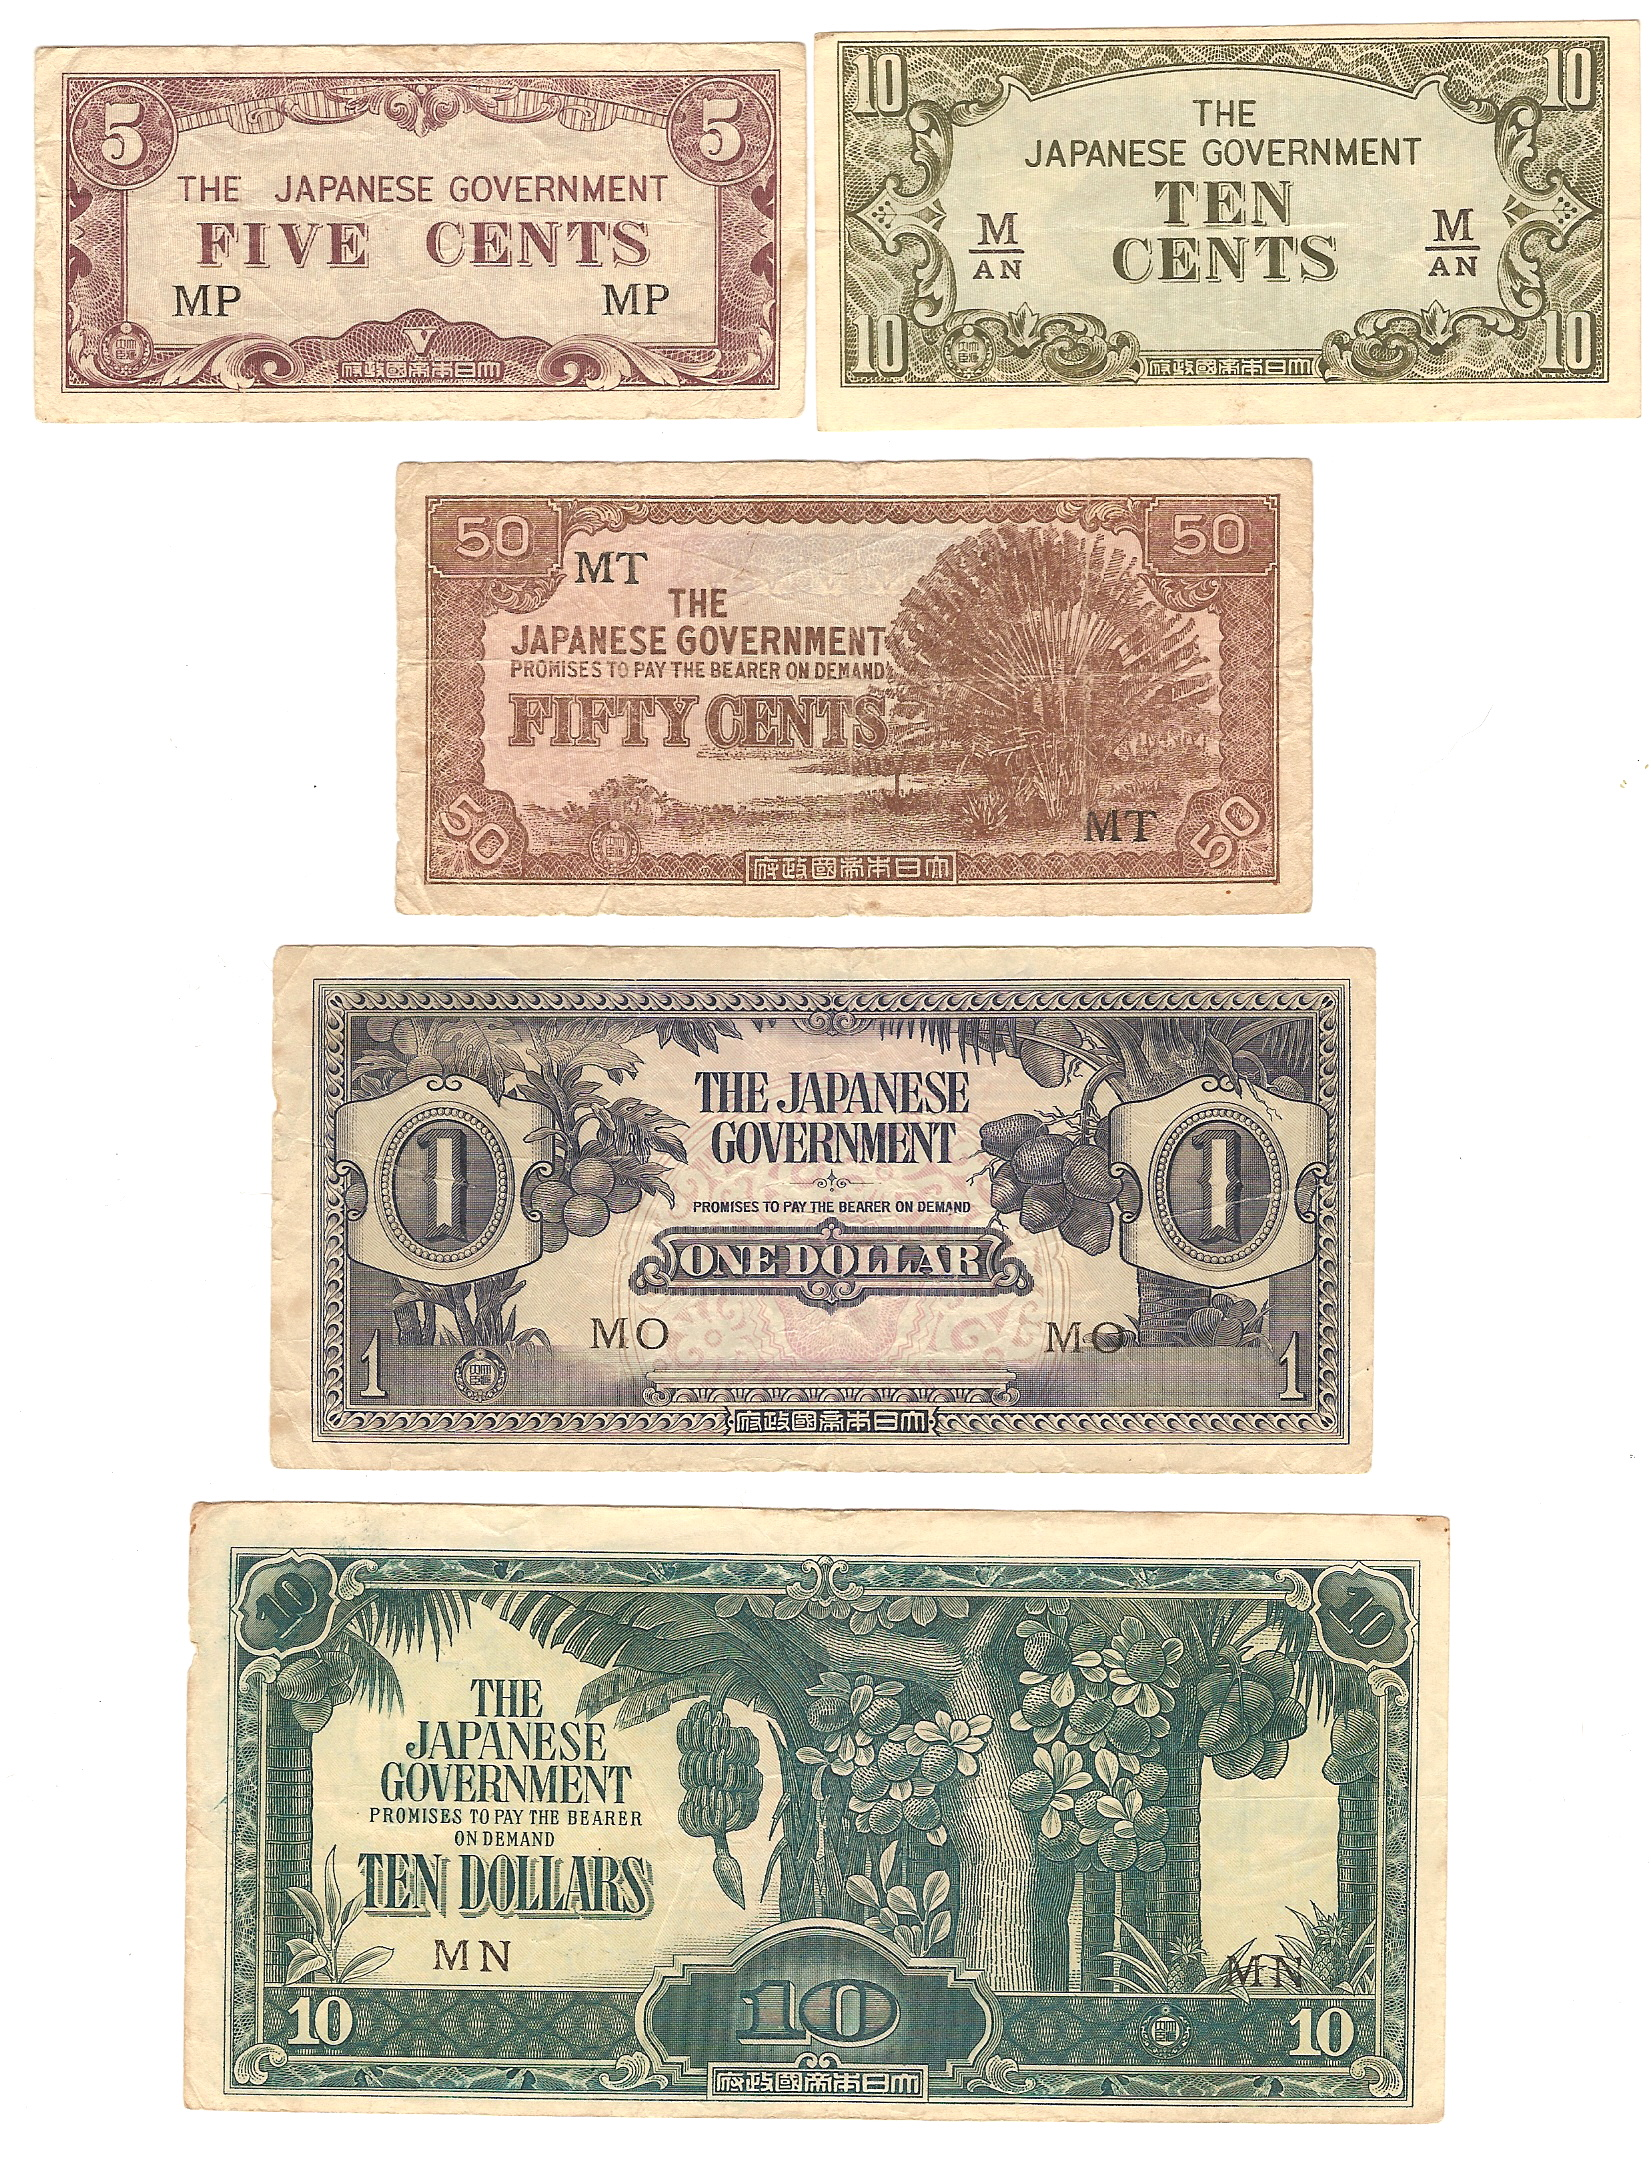 100 Dollar Berapa Rupiah : dollar, berapa, rupiah, Japanese, Government-issued, Dollar, Malaya, Borneo, Wikipedia